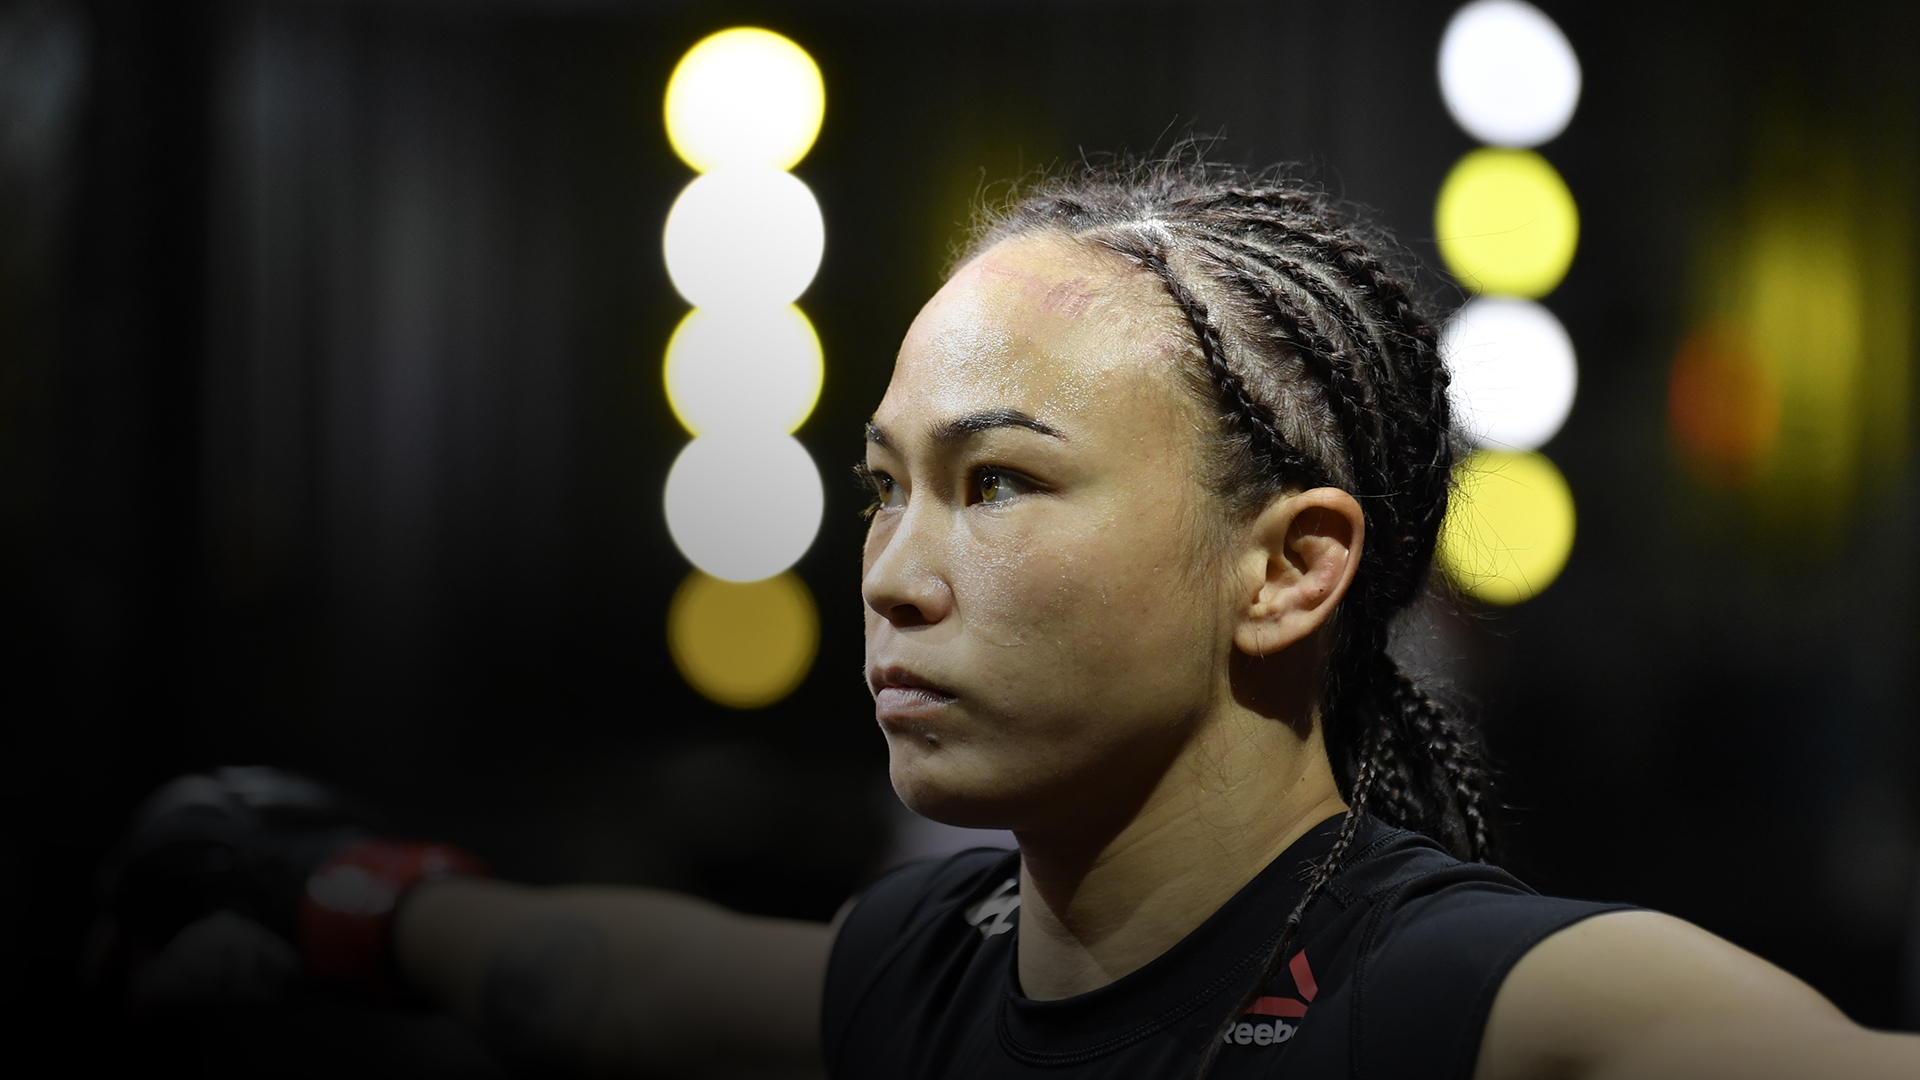 Michelle Waterson prepares to fight Angela Hill in a strawweight fight during the UFC Fight Night event at UFC APEX on September 12, 2020 in Las Vegas, Nevada. (Photo by Jeff Bottari/Zuffa LLC)